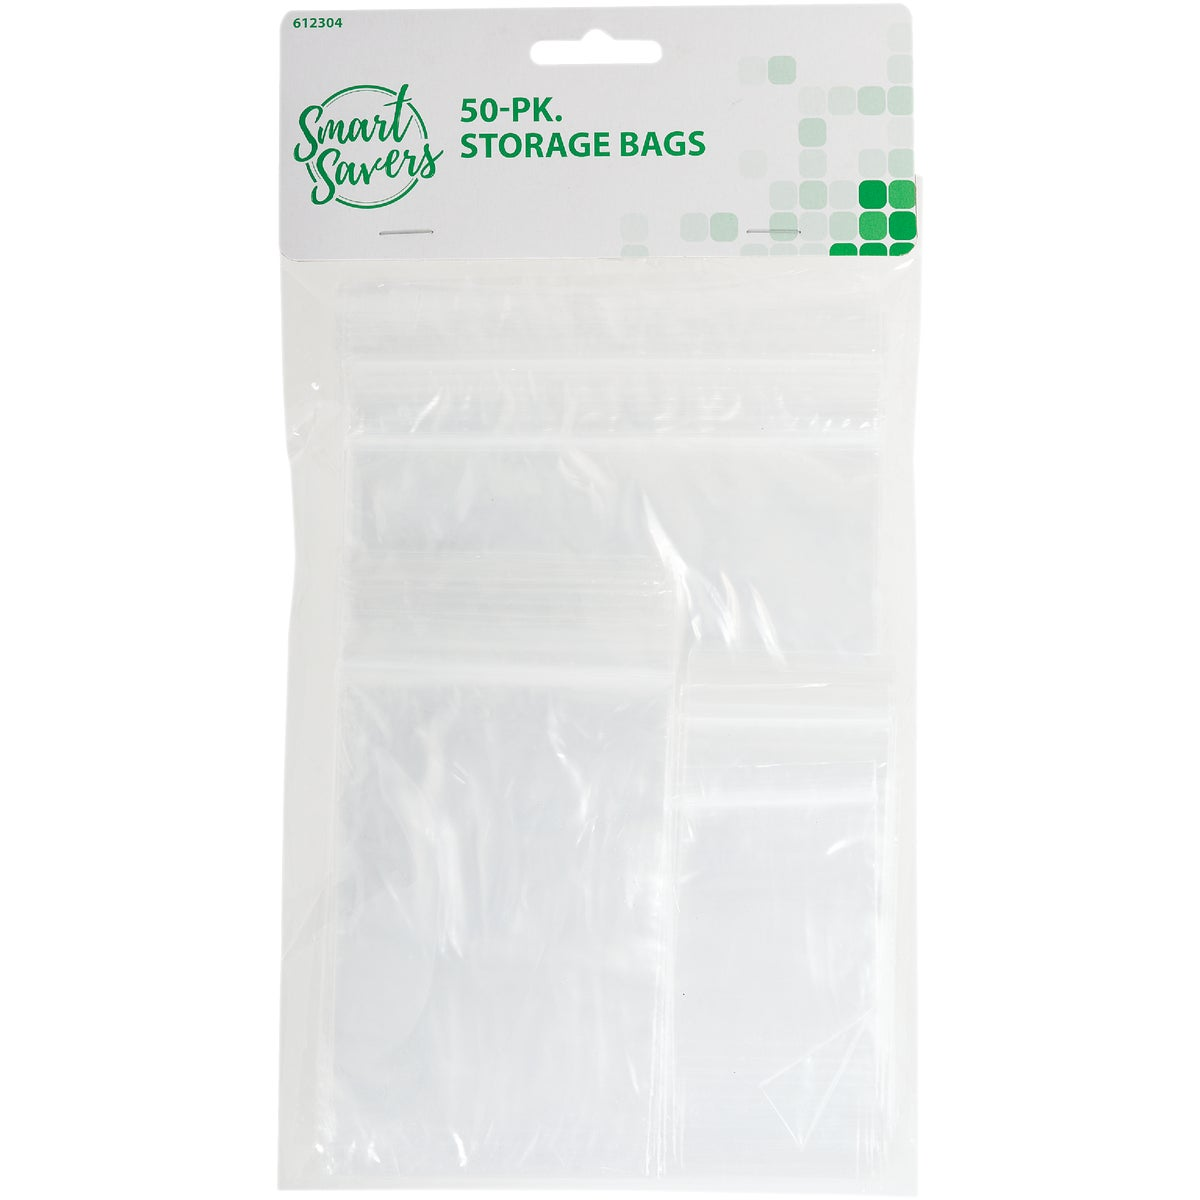 50PC STORAGE BAGS - HJ035 by Do it Best